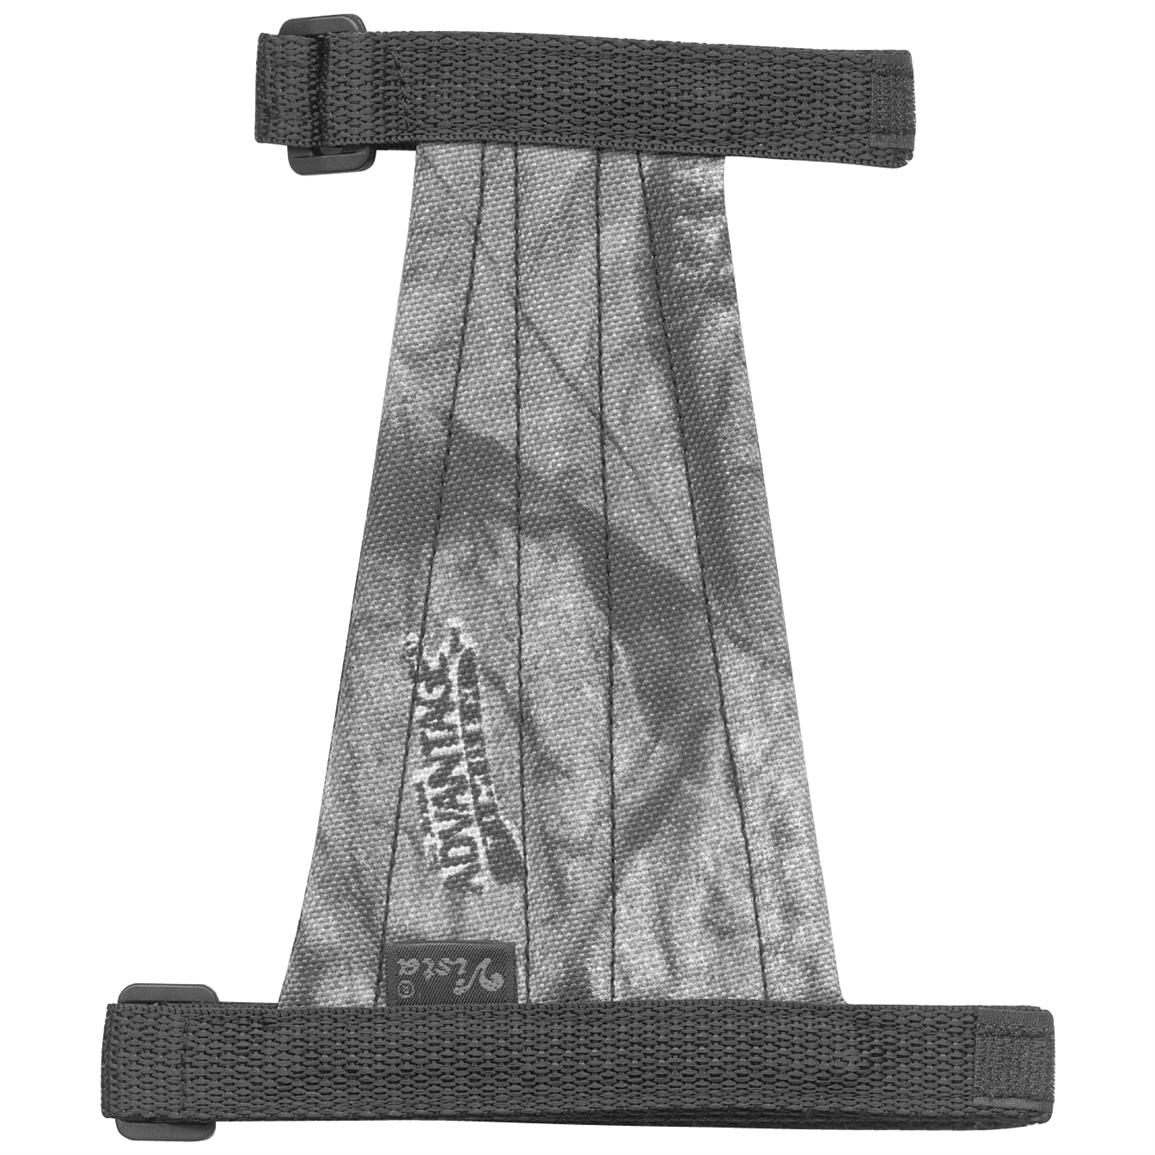 Vista® Tuff Lite Cordura Armguard with Quick Release Buckles